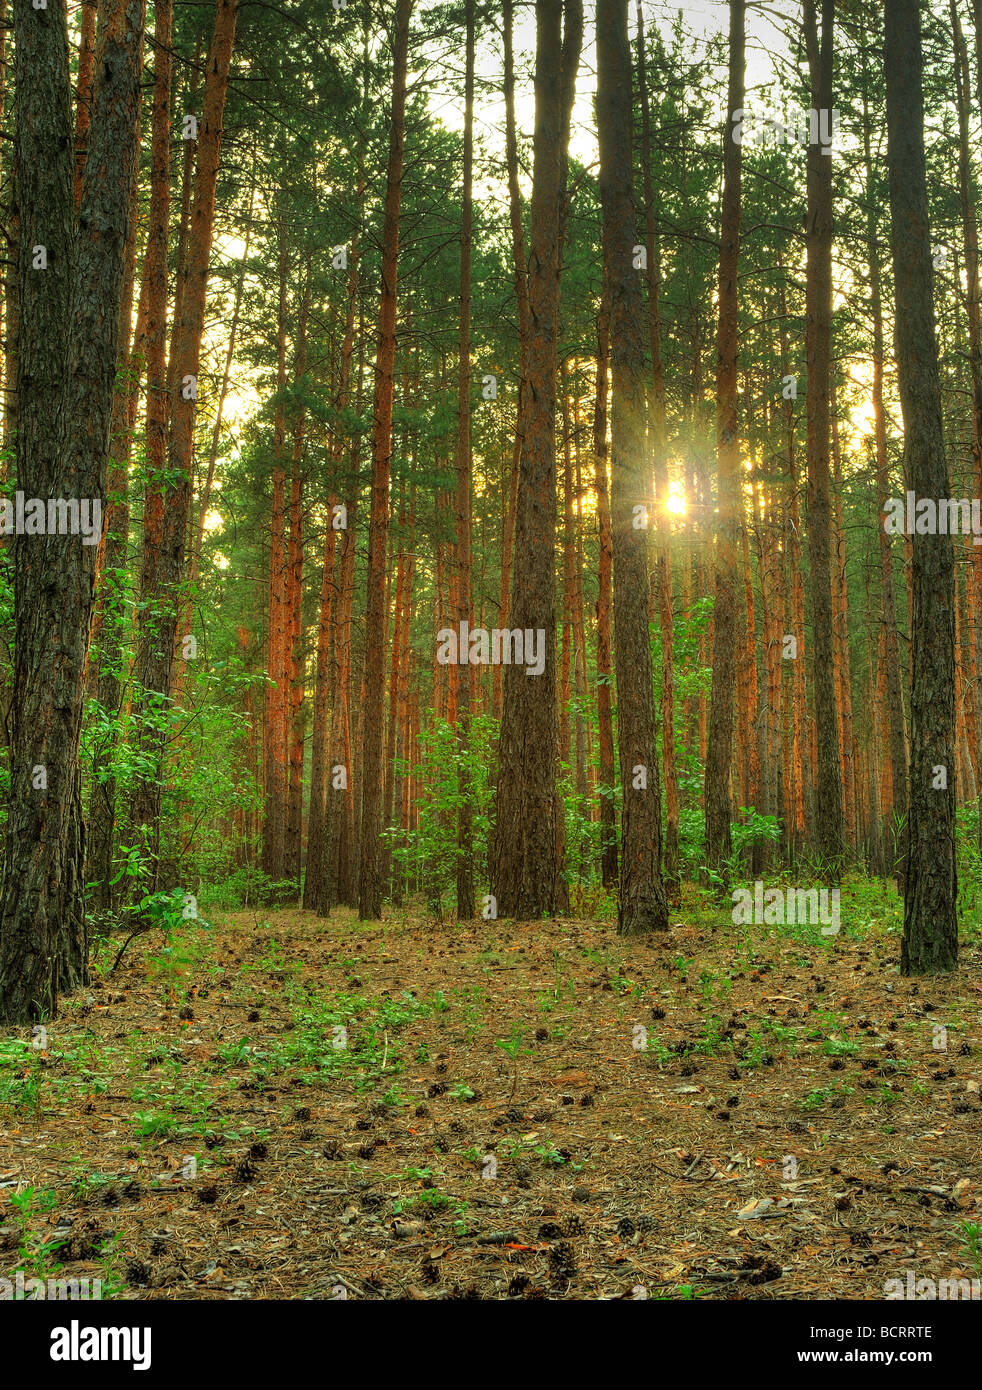 Forest A coniferous forest in the East Europe Ukraine - Stock Image